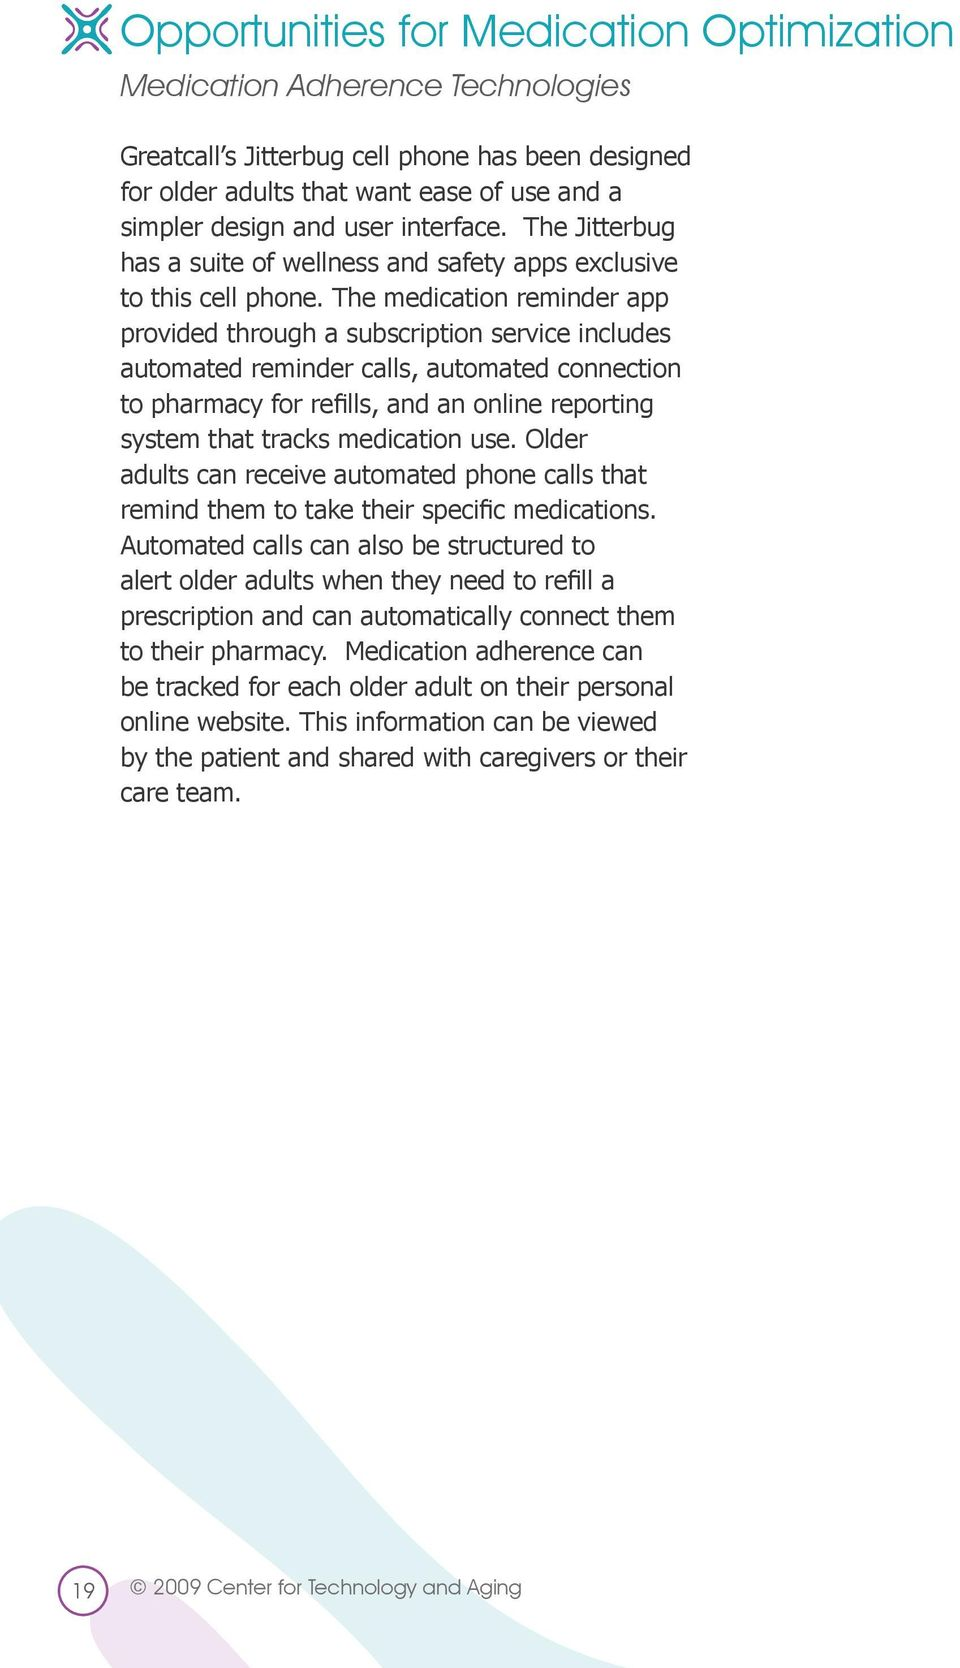 The medication reminder app provided through a subscription service includes automated reminder calls, automated connection to pharmacy for refills, and an online reporting system that tracks